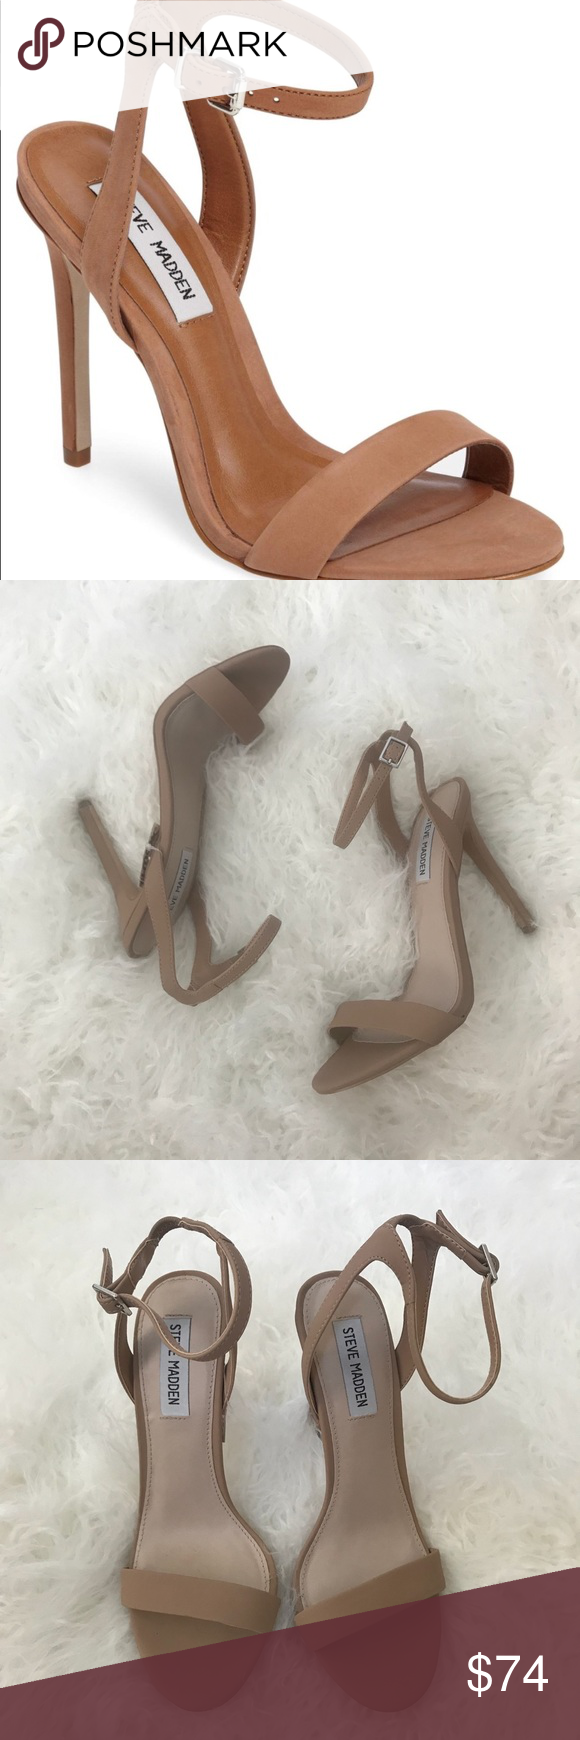 5cfd4b8edc1 Steve Madden 'Scene' Nude High Heel Sandals Sz 8.5 Brand new without ...